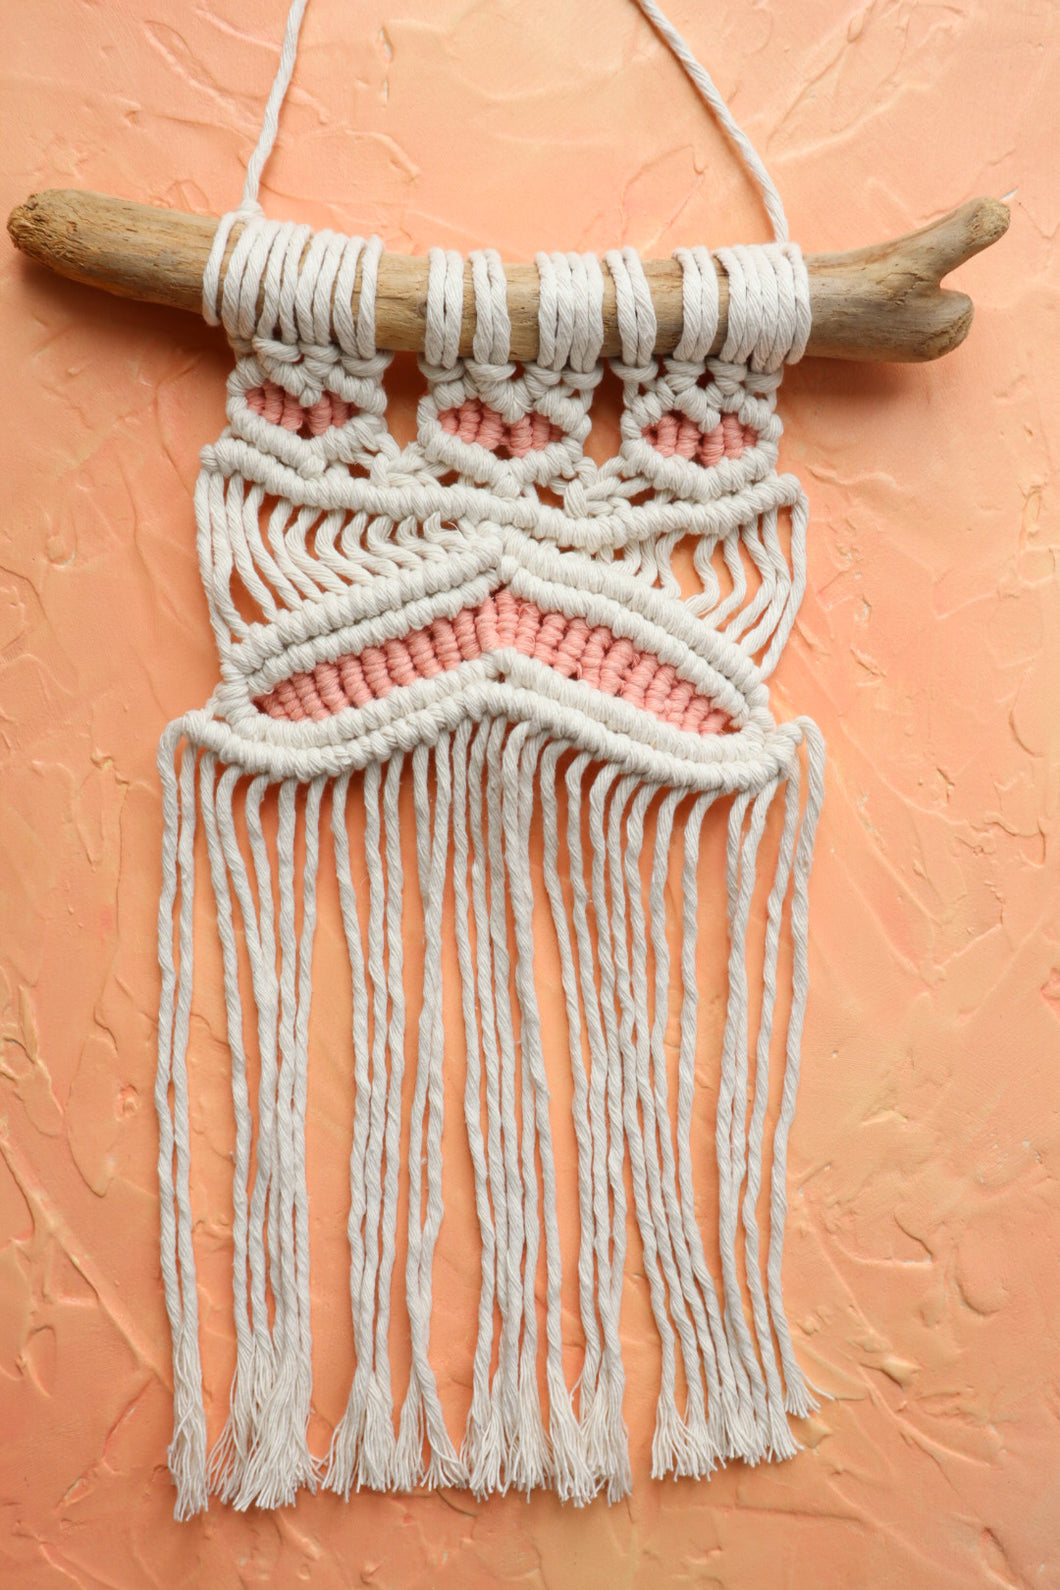 Small Macrame Wall Hanging - Woven Coral Pink